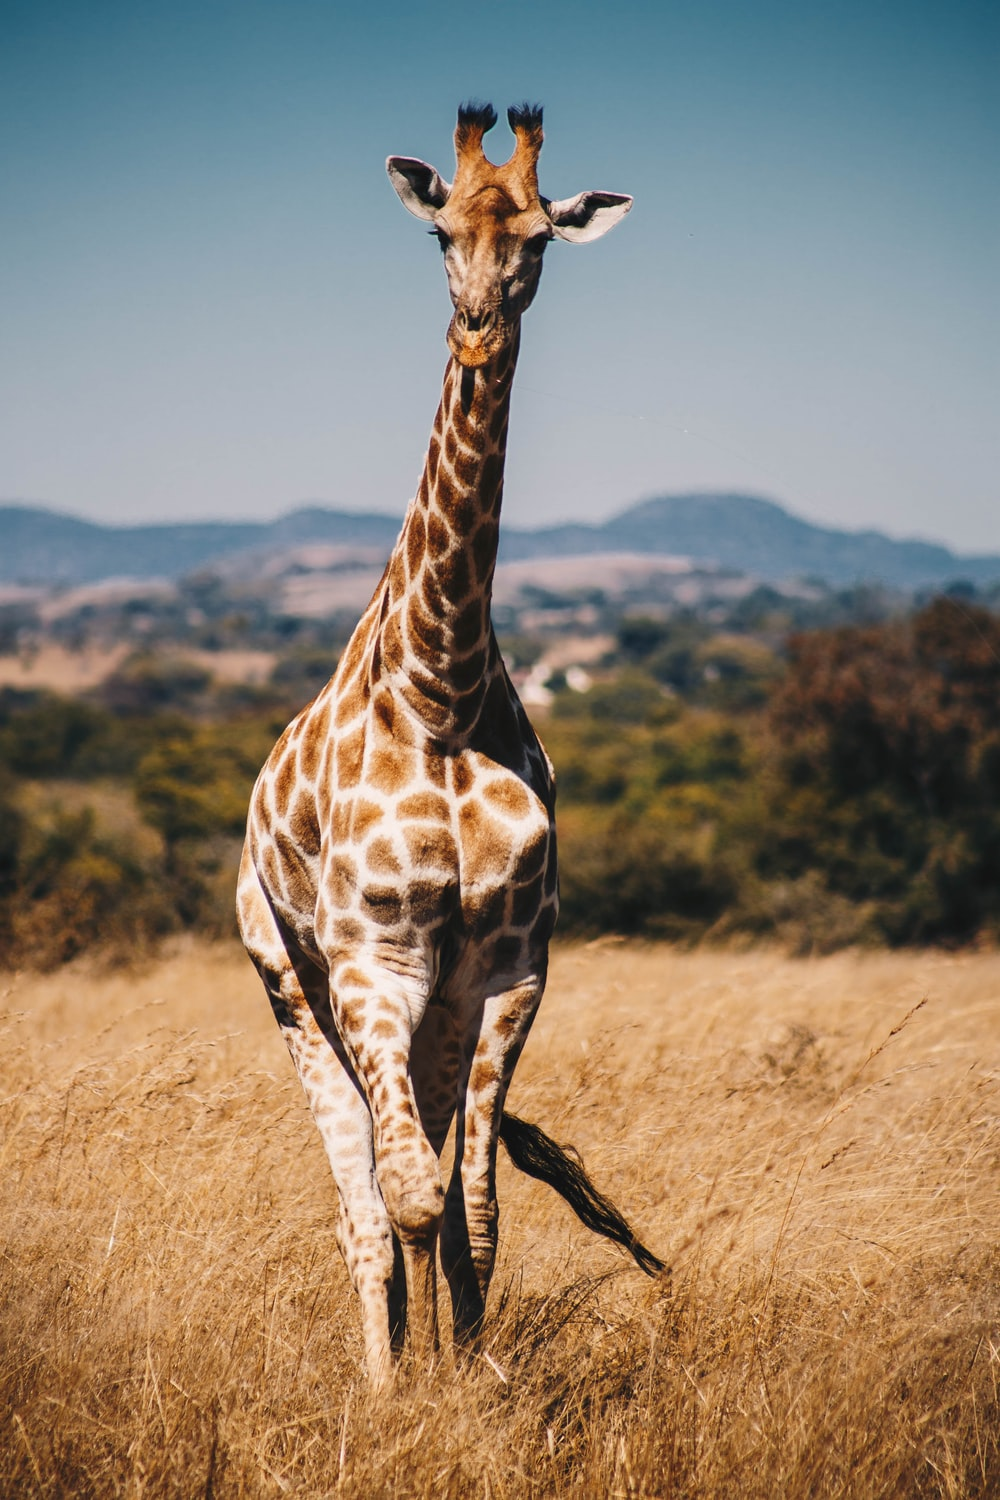 giraffe surrounded by brown grass